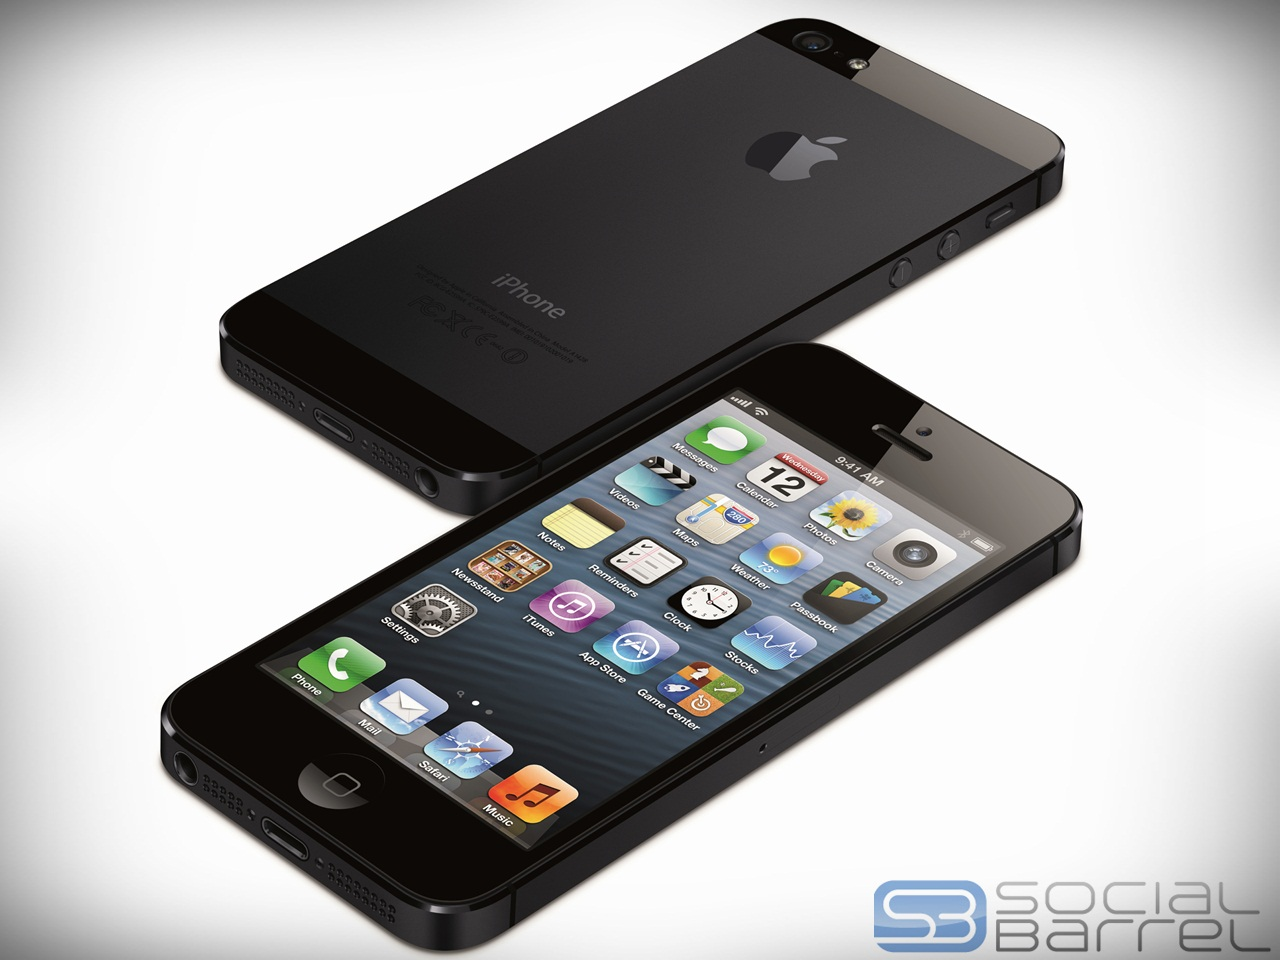 Apple iPhone Now Has BlackBerry-Grade Enterprise Security Say Experts